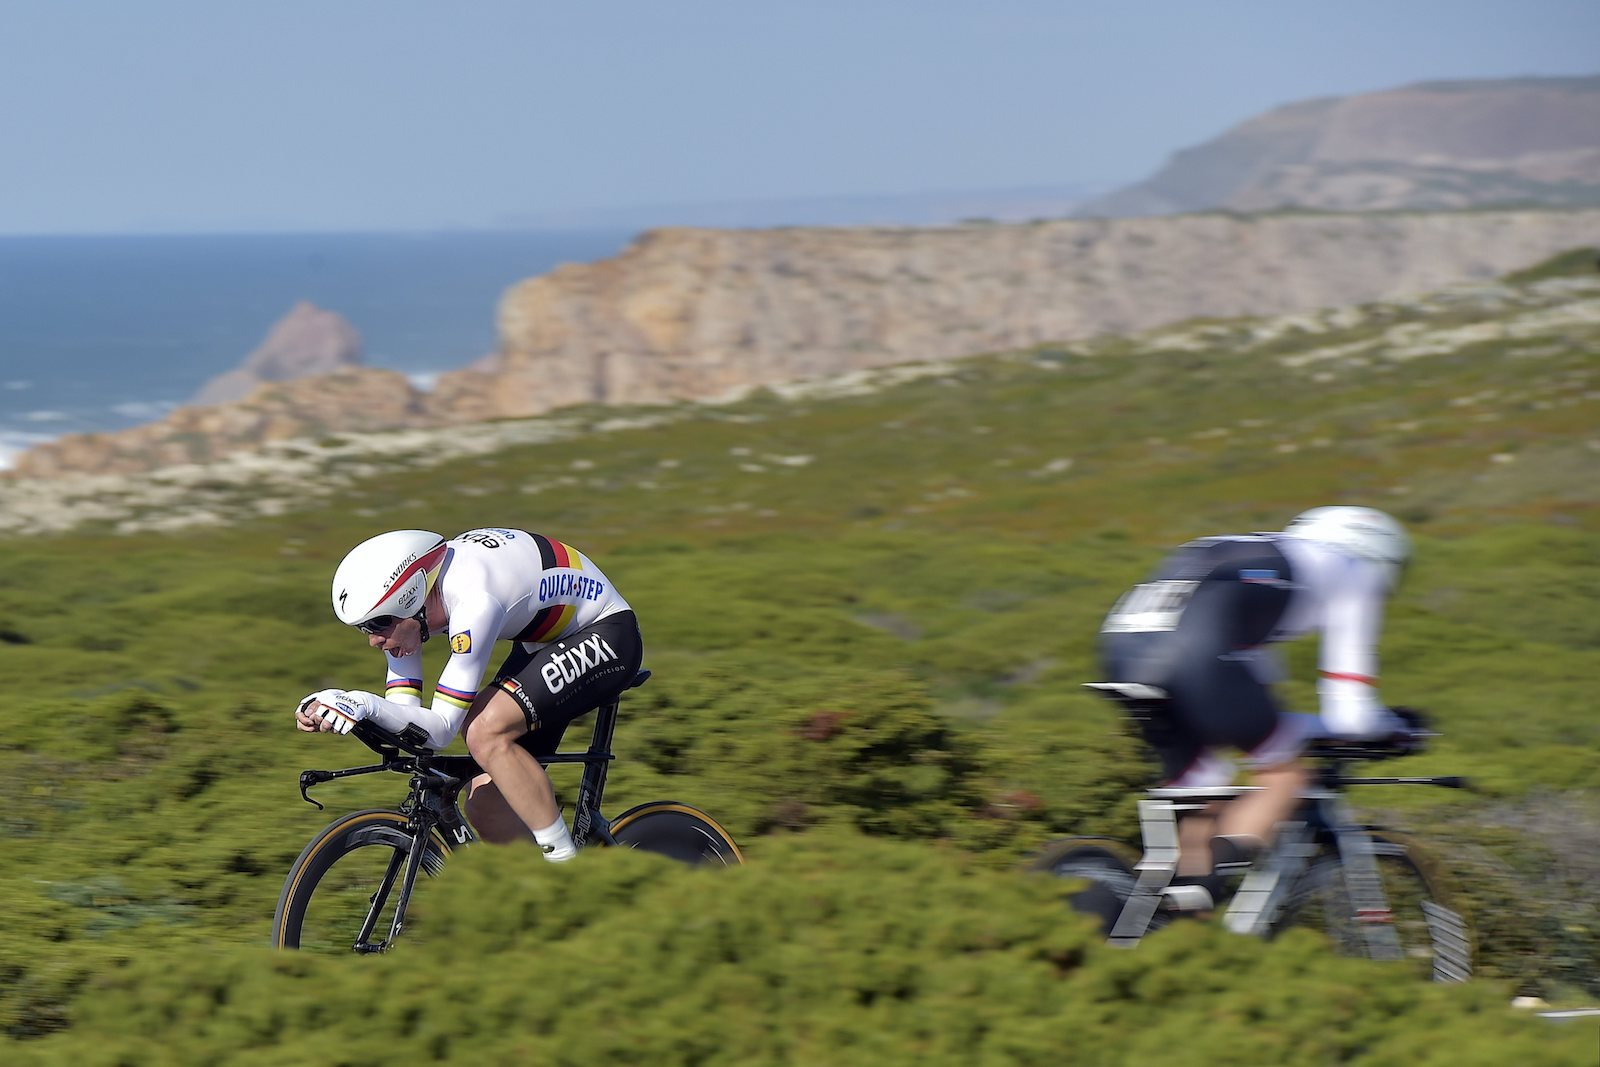 """Peter De Voecht, Belgium. """"MARTIN Tony (GER) Rider of ETIXX - QUICK STEP in action during stage 3 of the 42nd Tour of Algarve cycling race, an individual time trial of 18km, with start and finish in Sagres on February 19, 2016 in Sagres, Portugal."""" Professional. @peterdevoecht"""